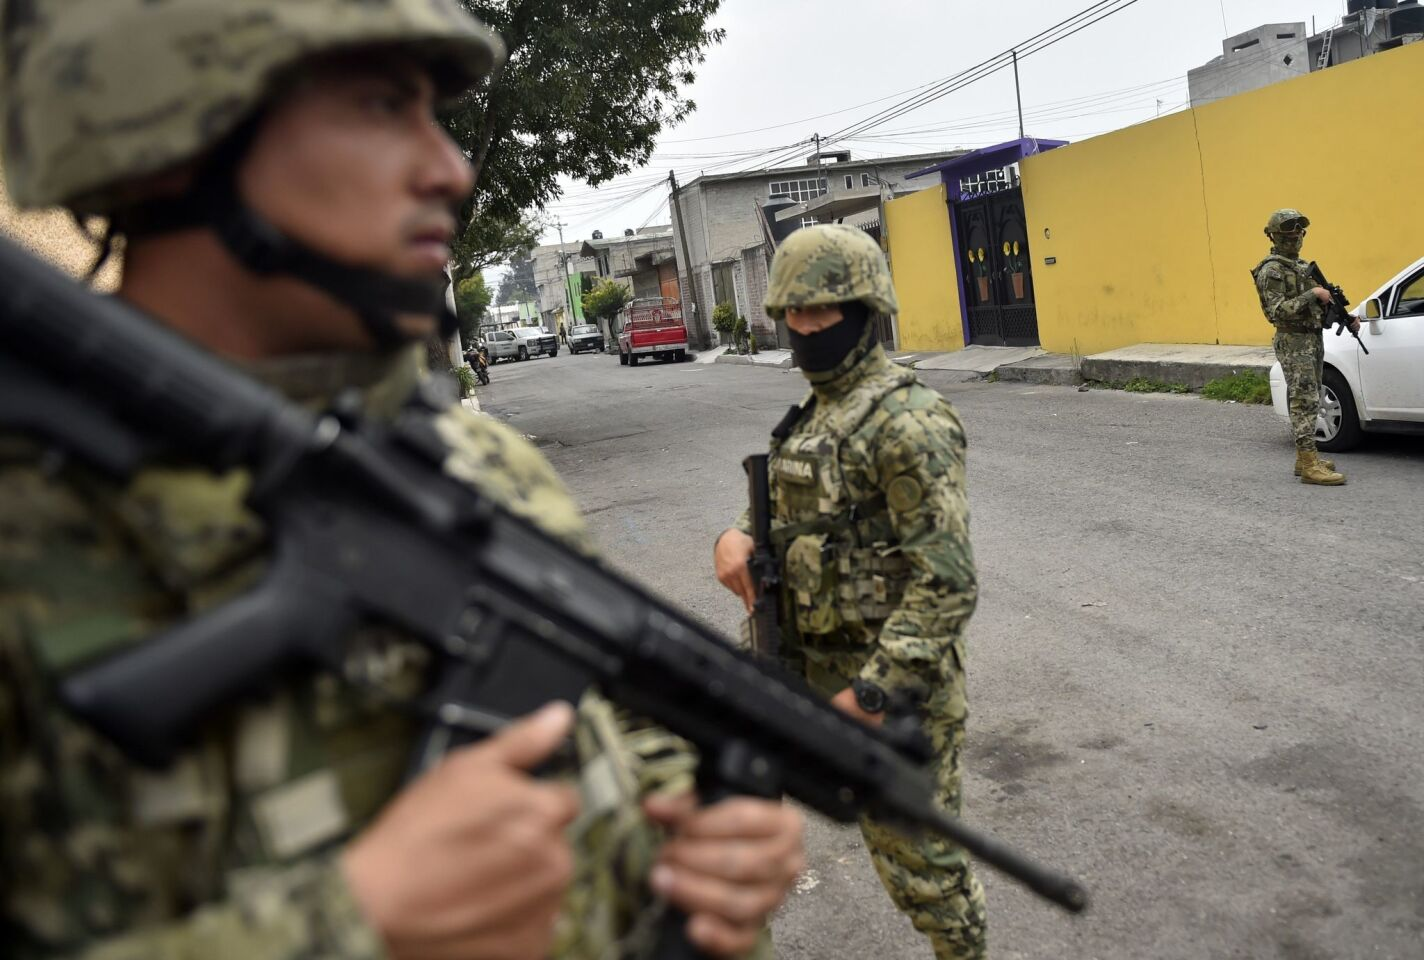 Mexican marines guard the scene of a shootout in which eight suspected drug traffickers were shot dead in Tlahuac, Mexico City on July 20, 2017.